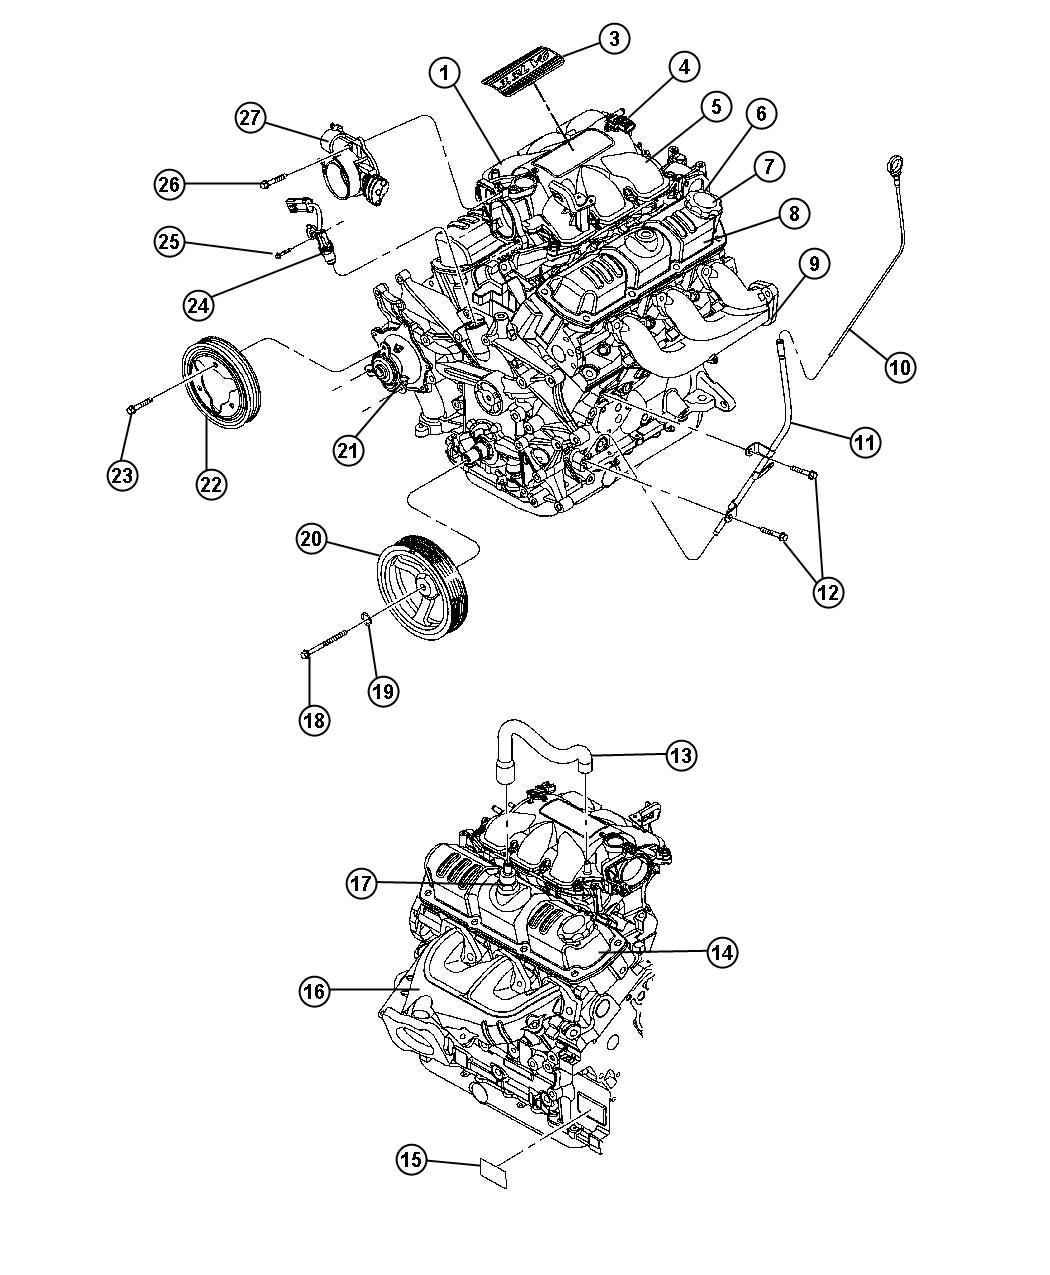 Engine Assembly Identification And Components 3 8l 3 8l